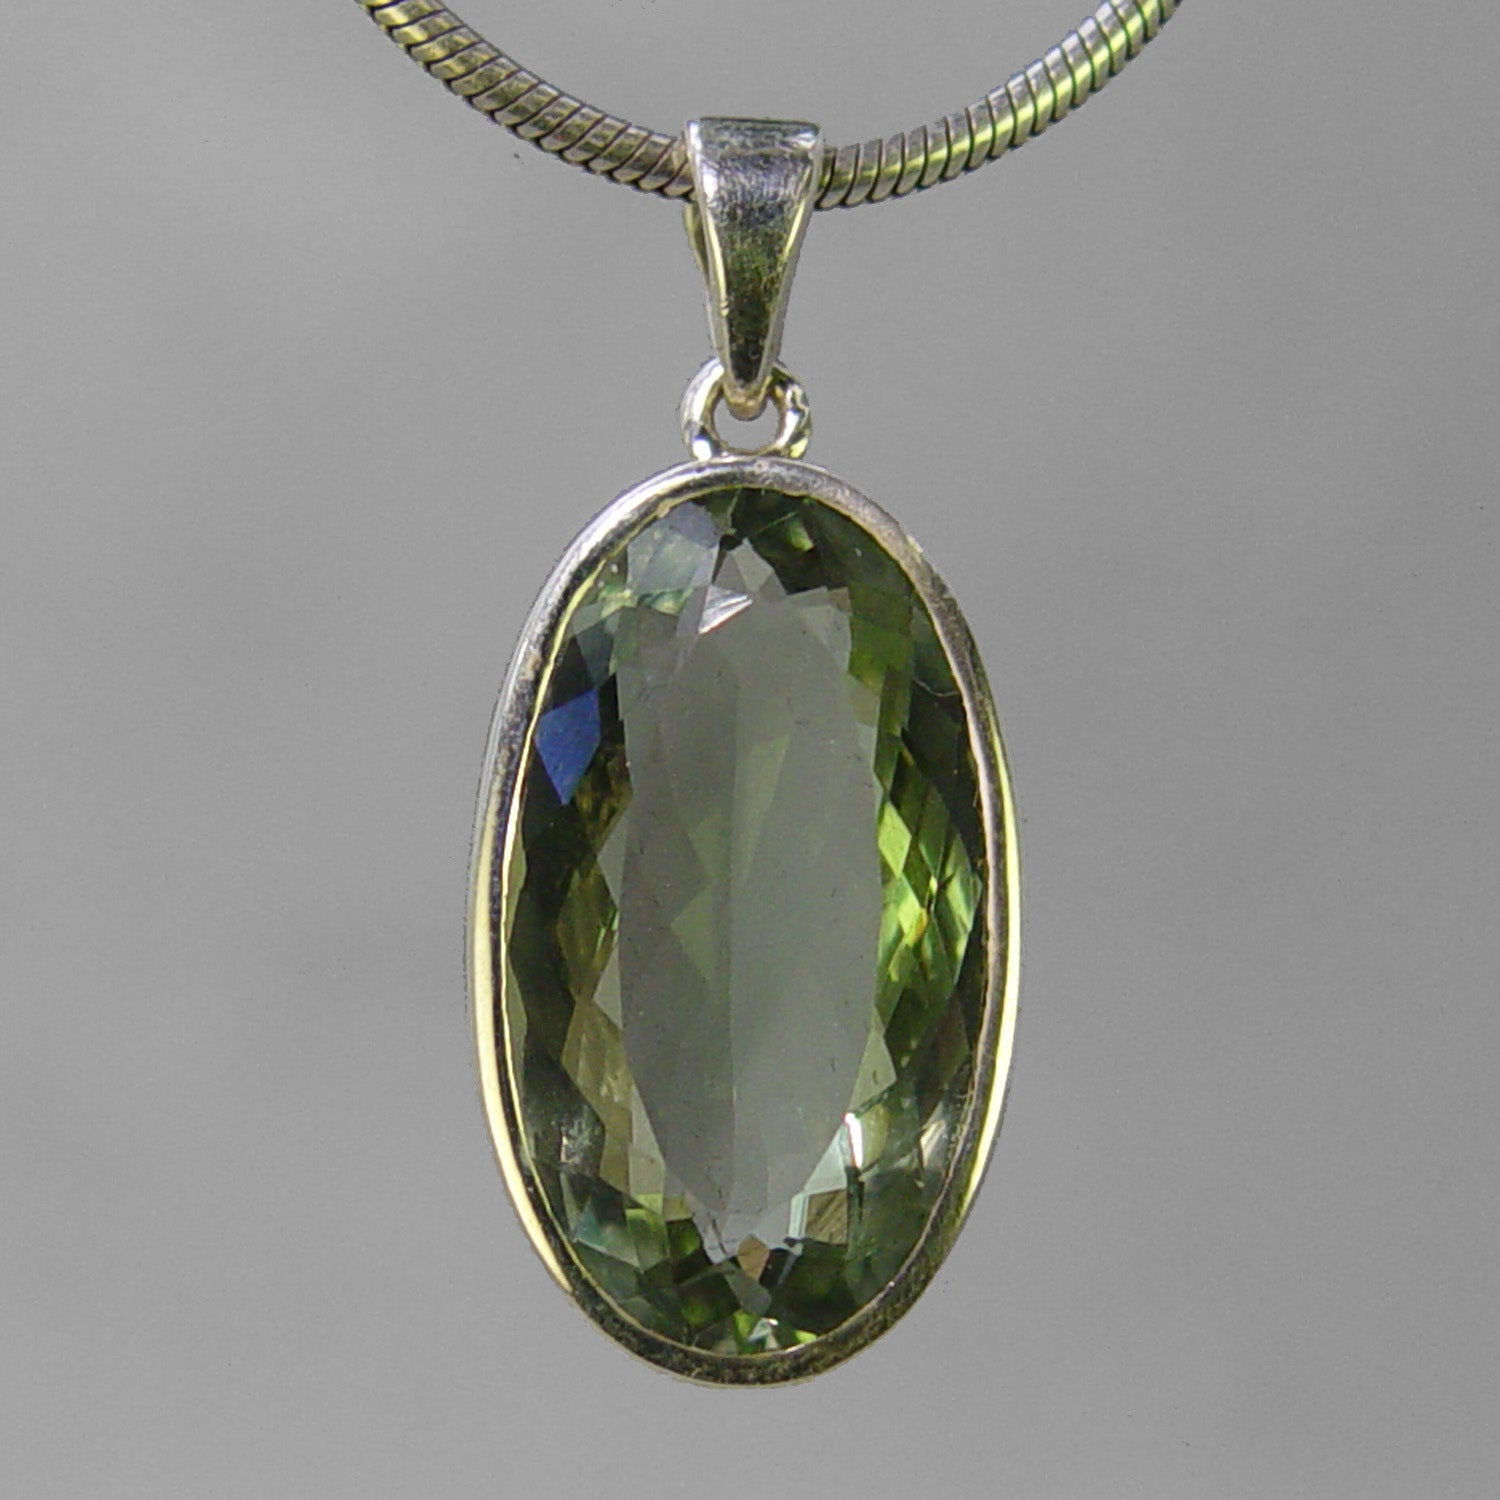 Green Quartz 21 ct Faceted Oval Bezel Set Sterling Silver Pendant